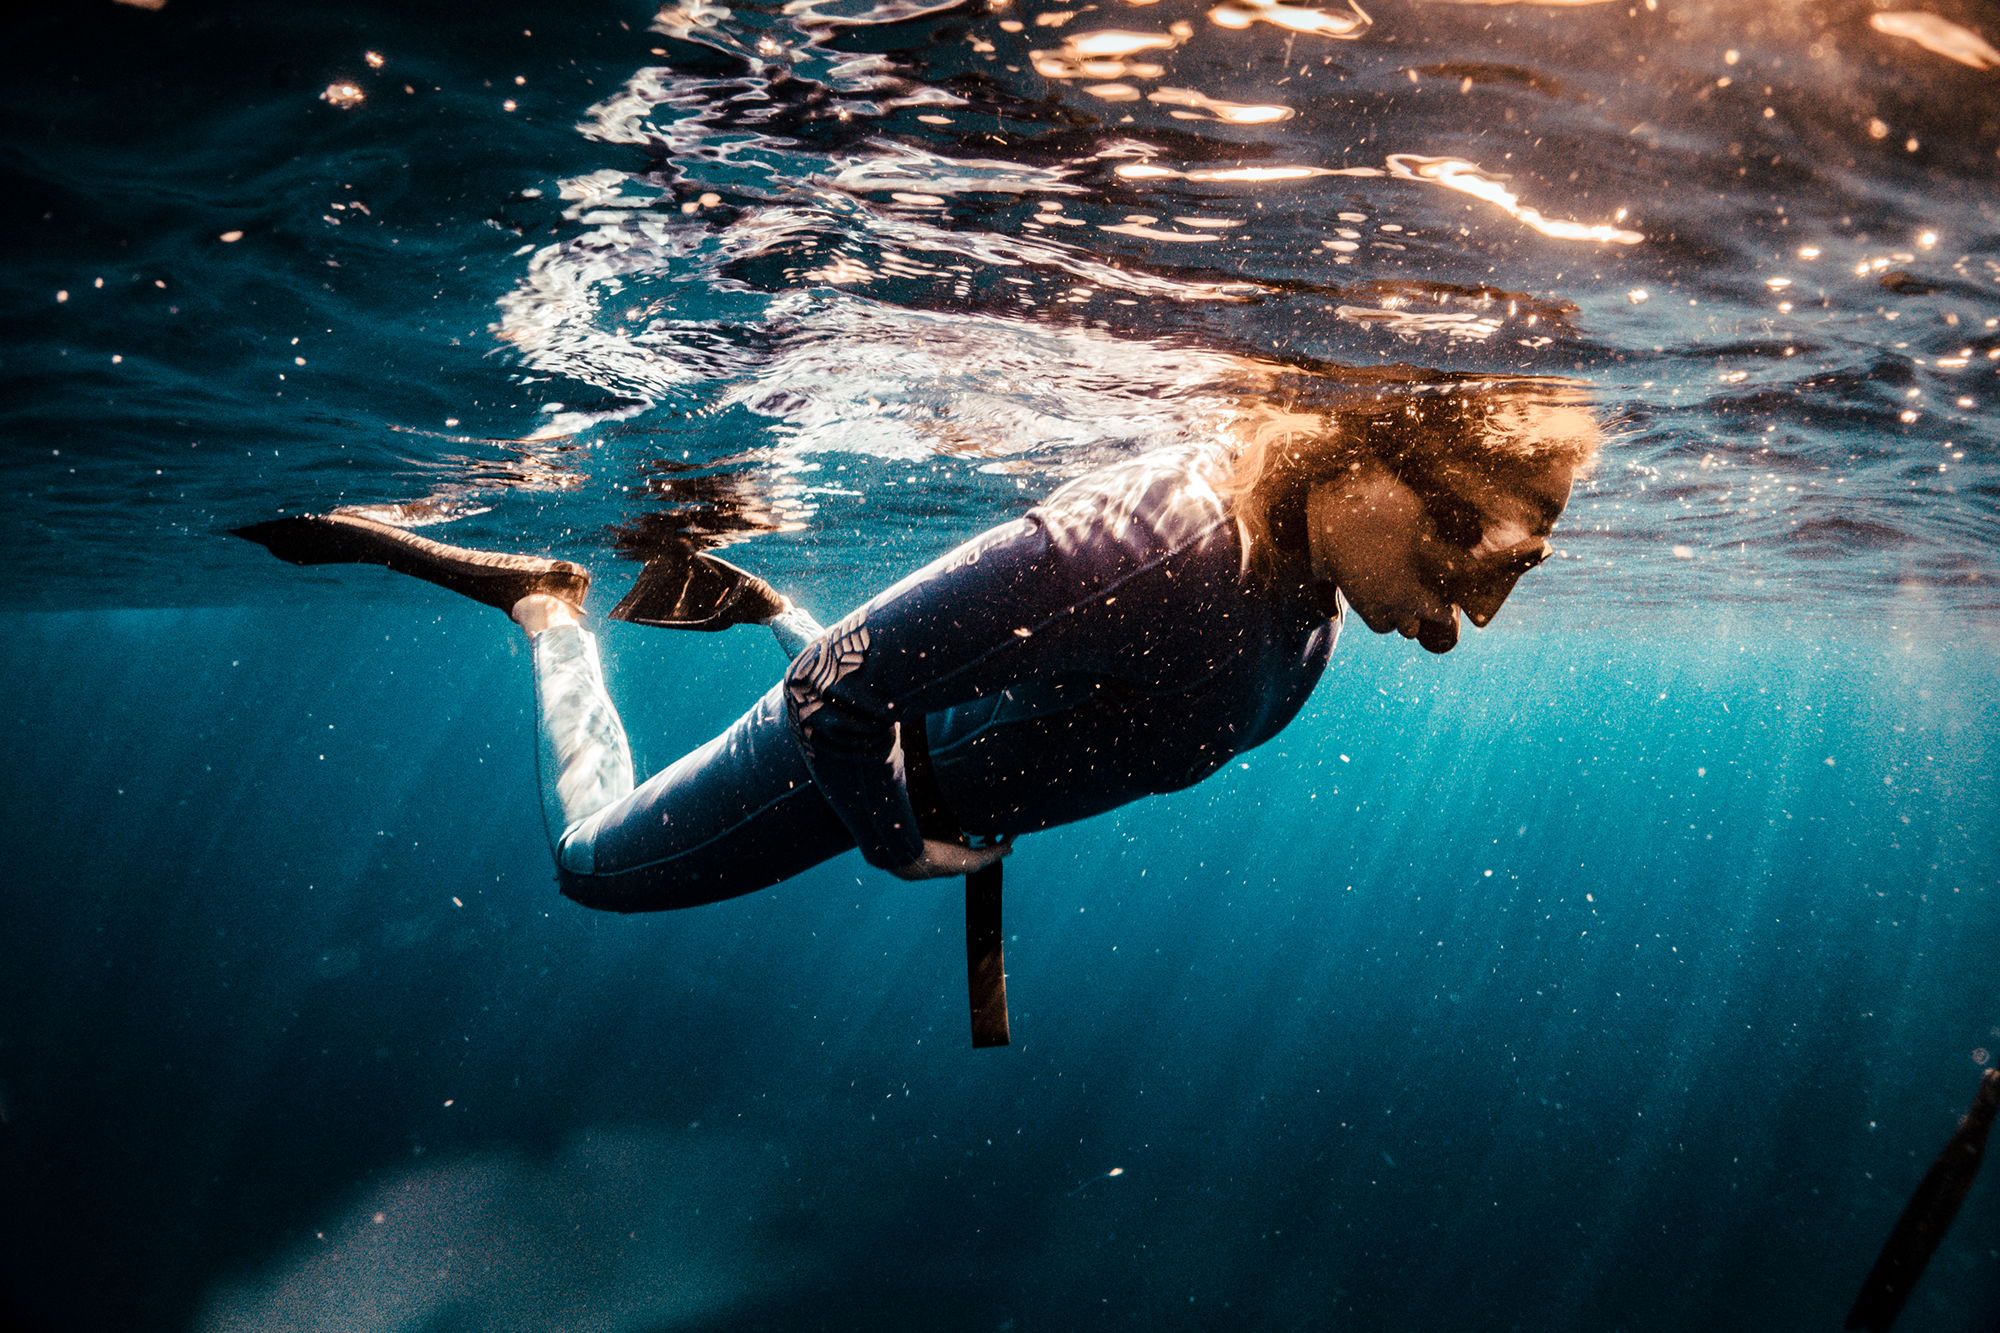 190407_MR-FREEDIVE-Tino-Ben-Mike-Marie-small_DSC05981.png